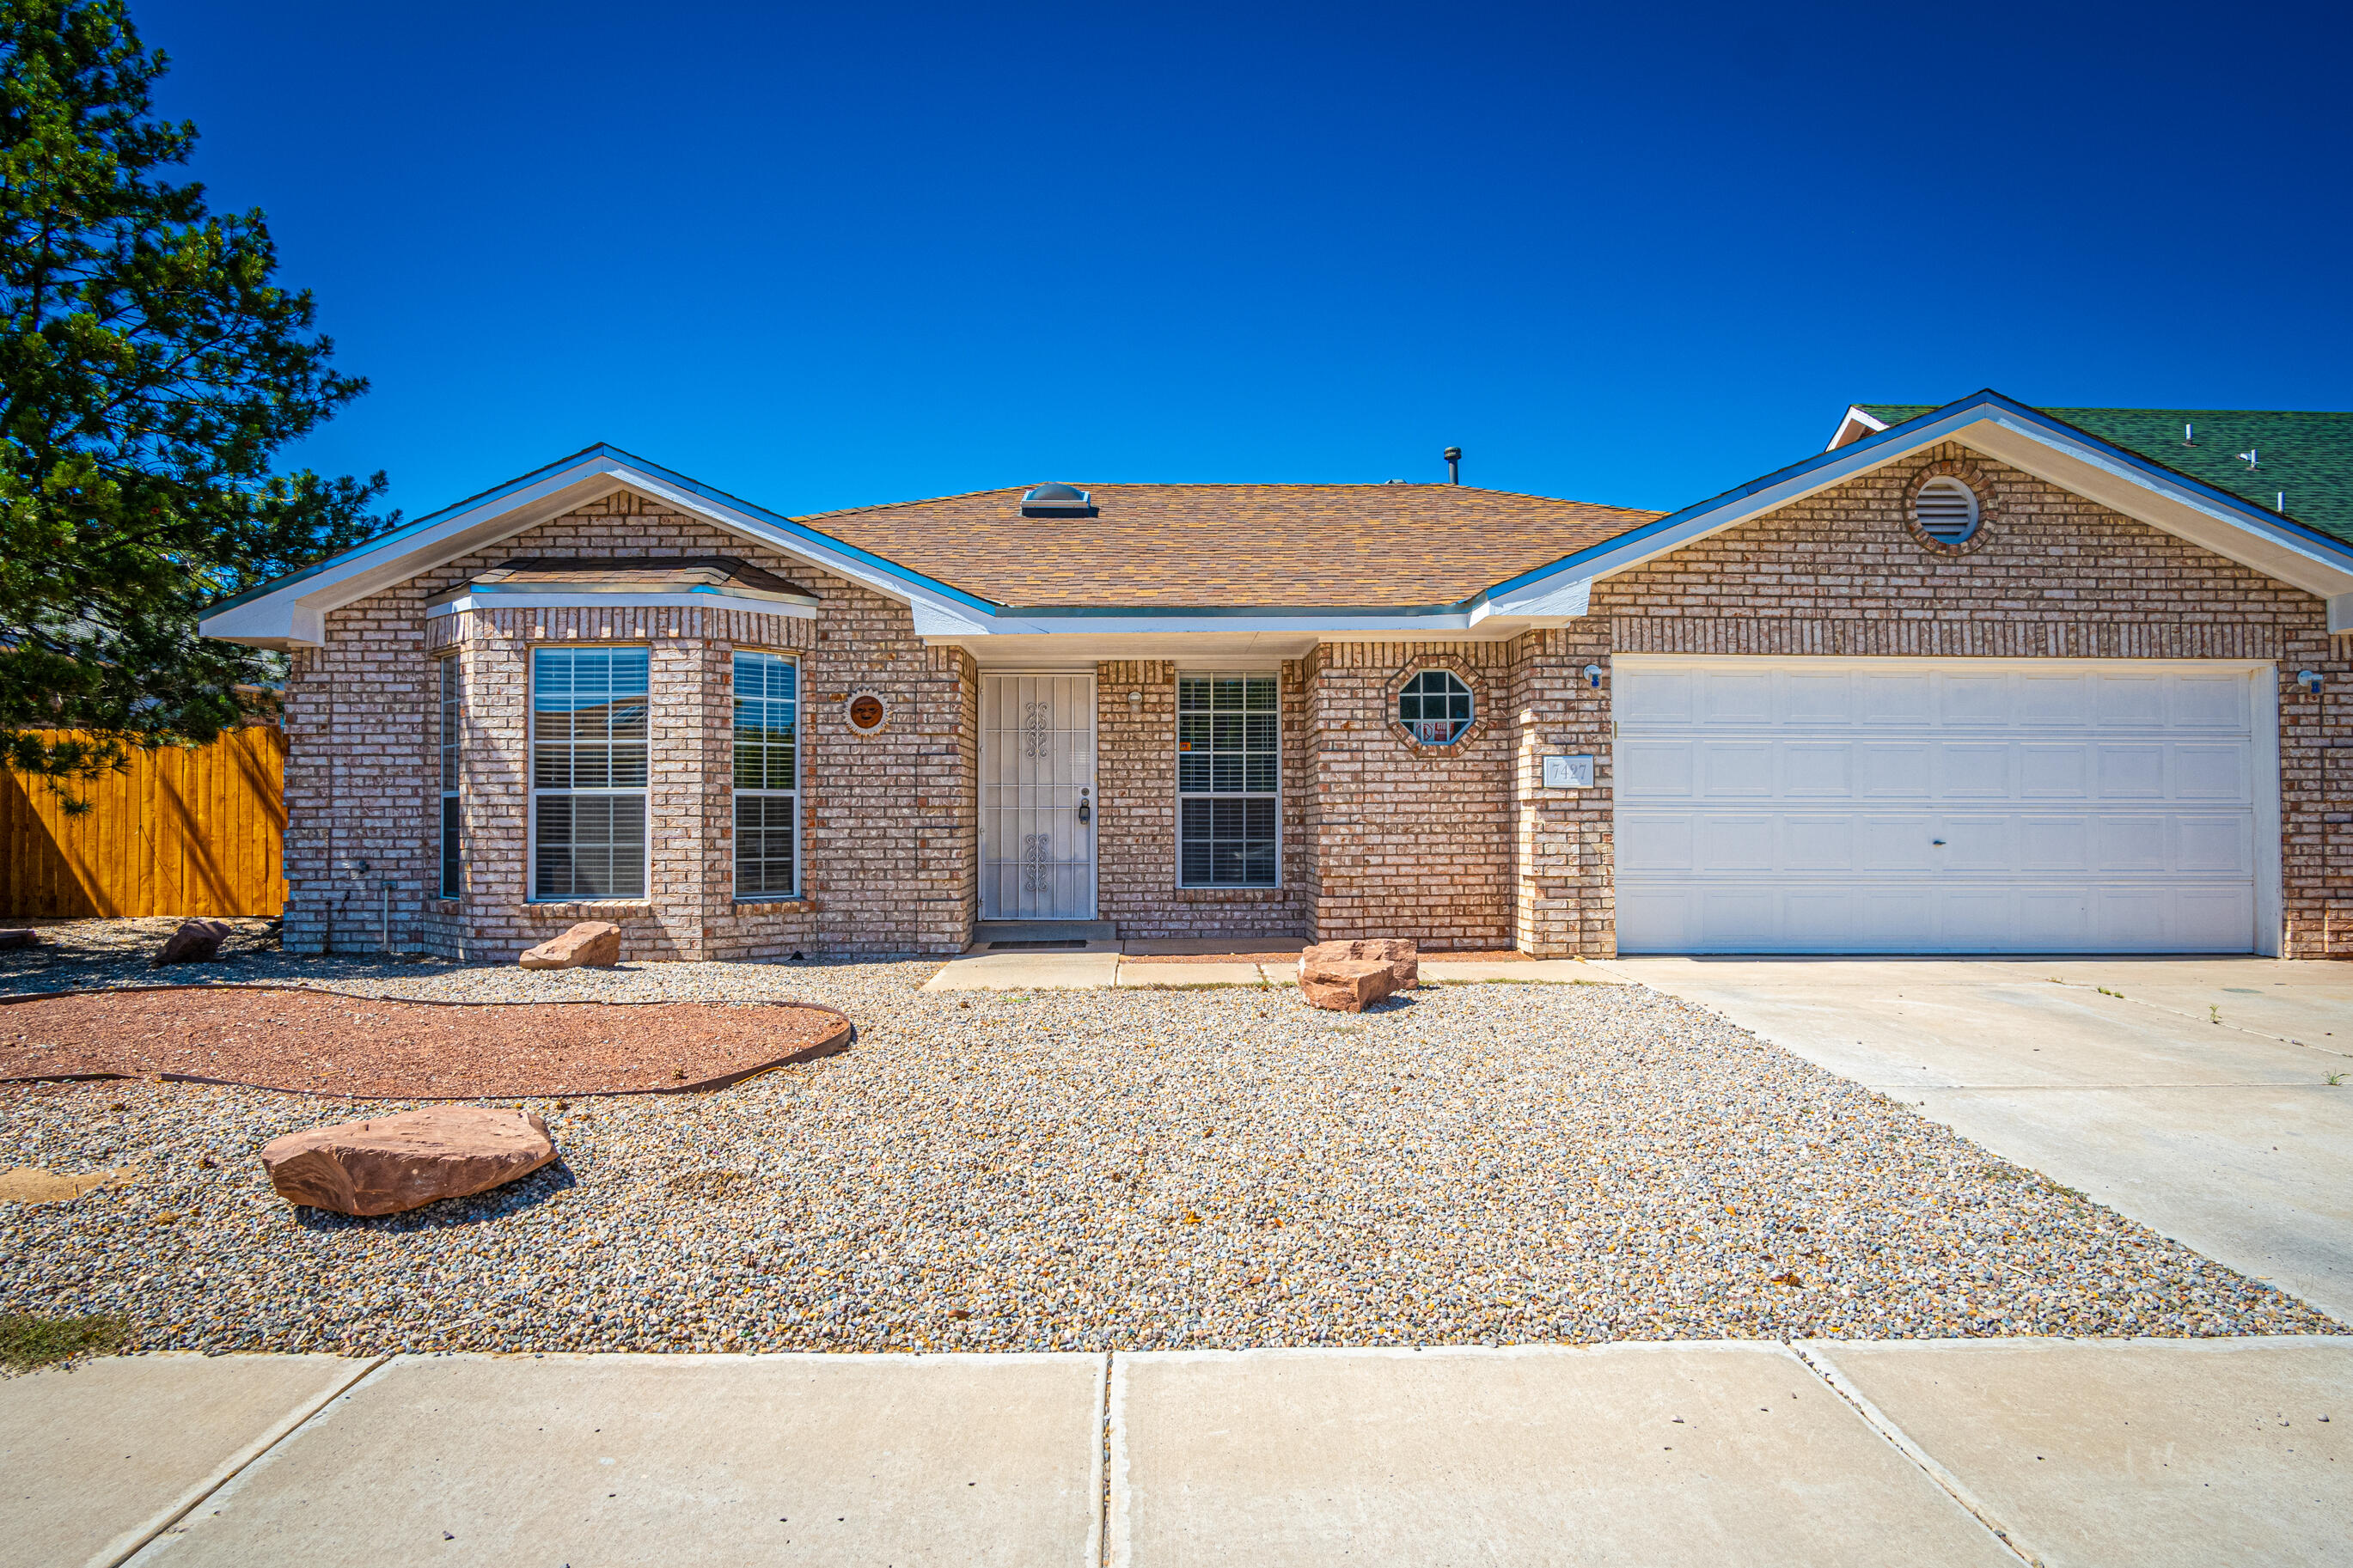 This beautifully updated Oppel Jenkins home is now for sale. This great floor plan comes with all that you could ask for. Home features 4 Bedrooms, 2 Full Bathrooms, Granite Countertops, stainless steel appliances, tile floors, carpet in only the bedrooms, Roof Replaced (2016), upgraded Refrigerated Air (2018), Newer Furnace (2018), New Tankless Water Heater (2021), New Block Wall, New Custom Side Gates, Alarm, and Irrigation system. Home also comes with garden beds in backyard that give you onions, carrots, beats, tomatoes, zucchini, cucumbers, basil and more. New 2' garden/flower bed wall built for anything you can imagine. Bonus*** 65 inch TV above fireplace conveys with home along with bookcase in front bedroom.*** This home will not last long! Call today for your private tour.